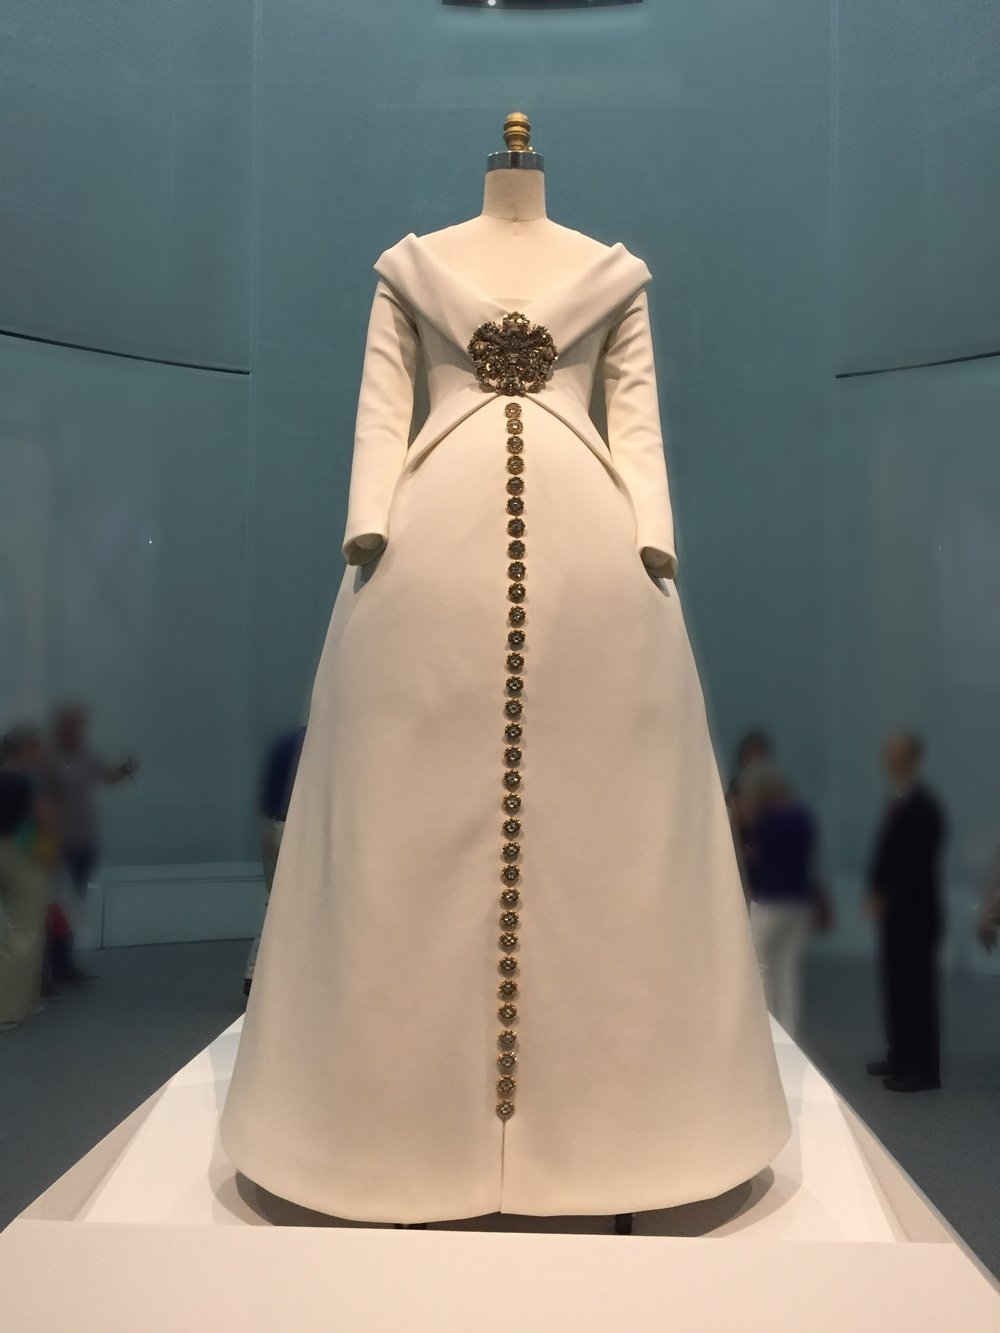 Wedding Ensemble, Karl Lagerfeld for House of Chanel, A/W 2014-15, haute couture